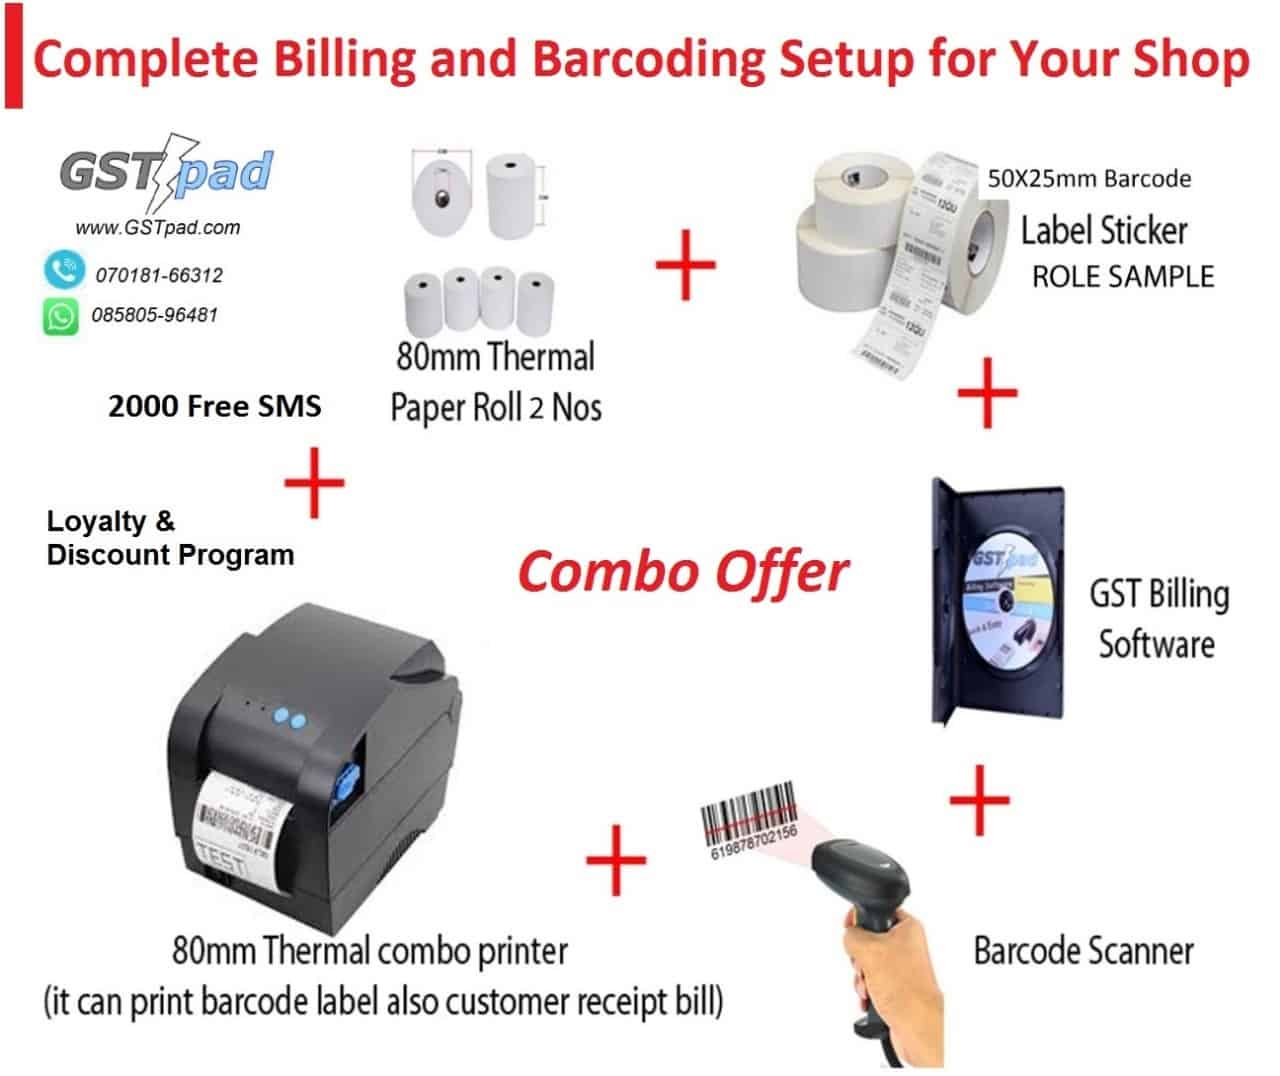 Billing software with barcode scanner